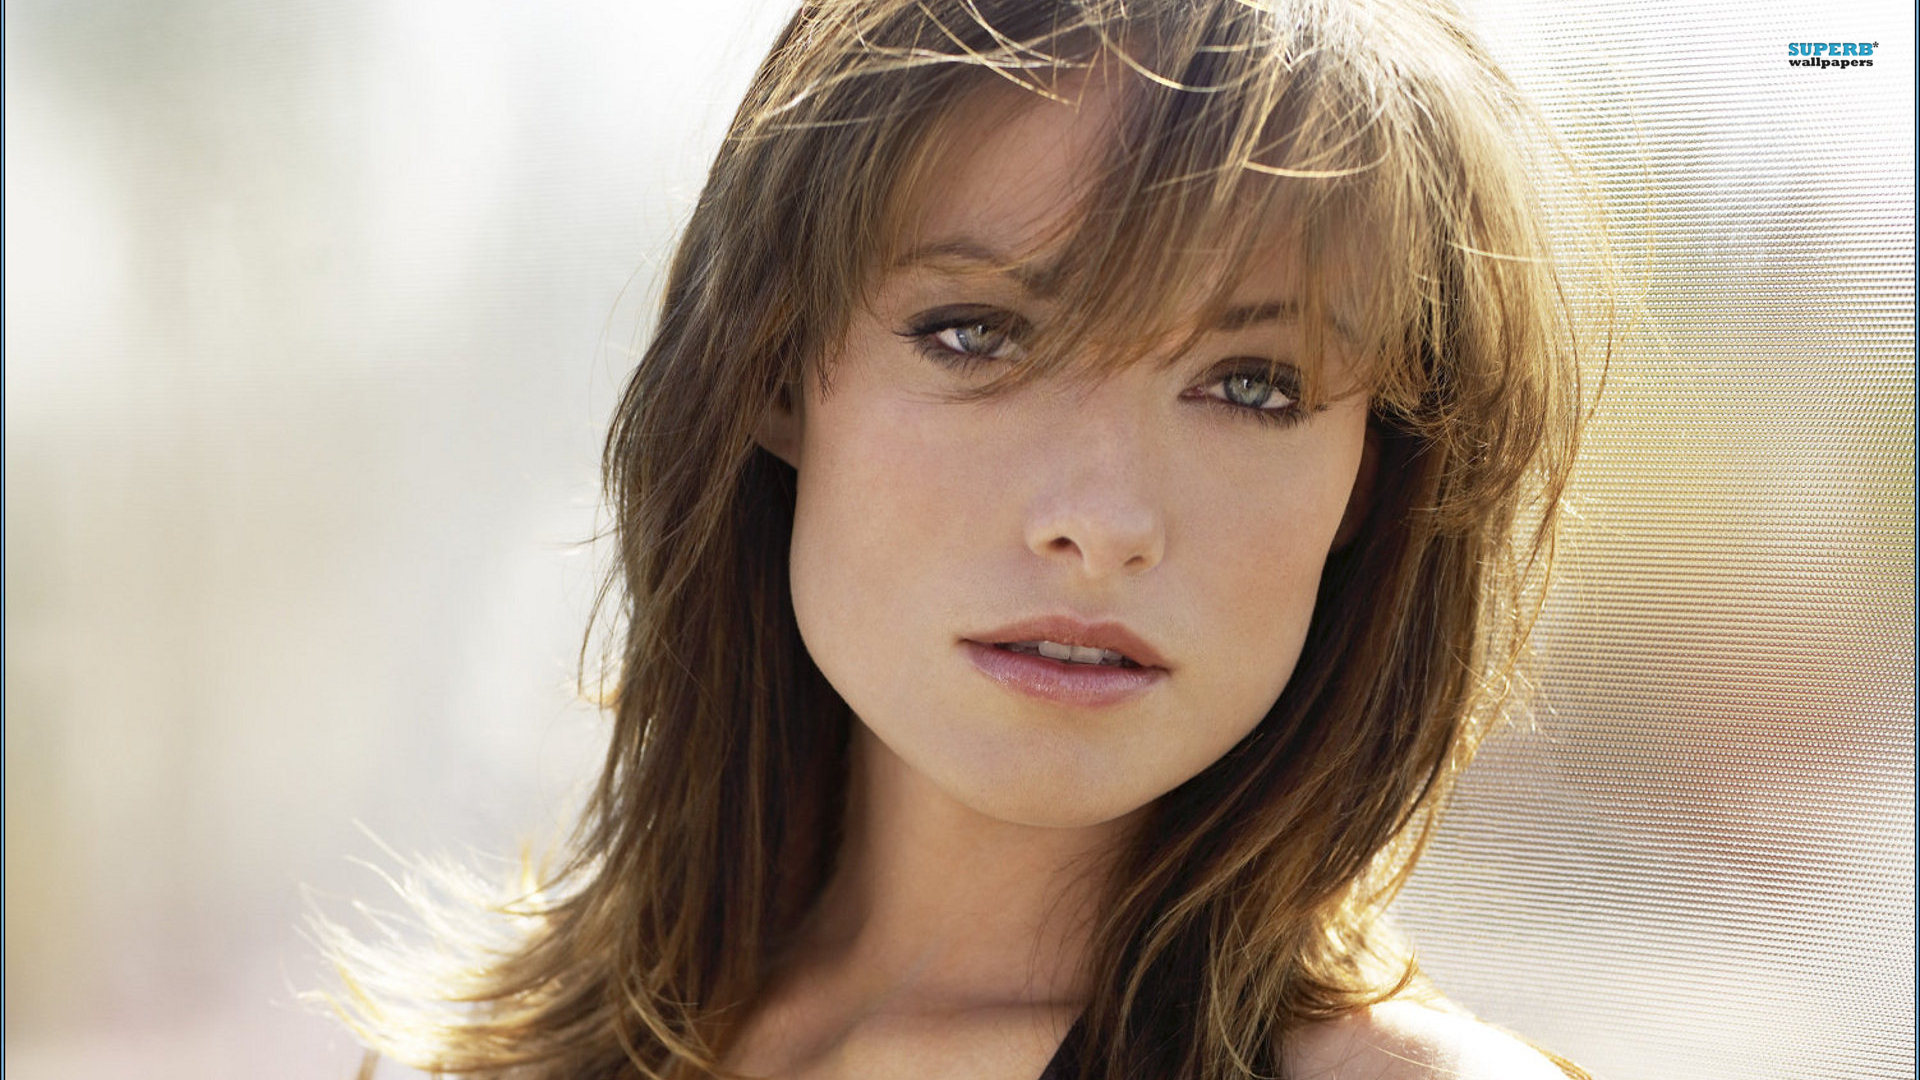 Cute Wallpapers To Say I Love You Olivia Wilde Hd Wallpapers For Desktop Download